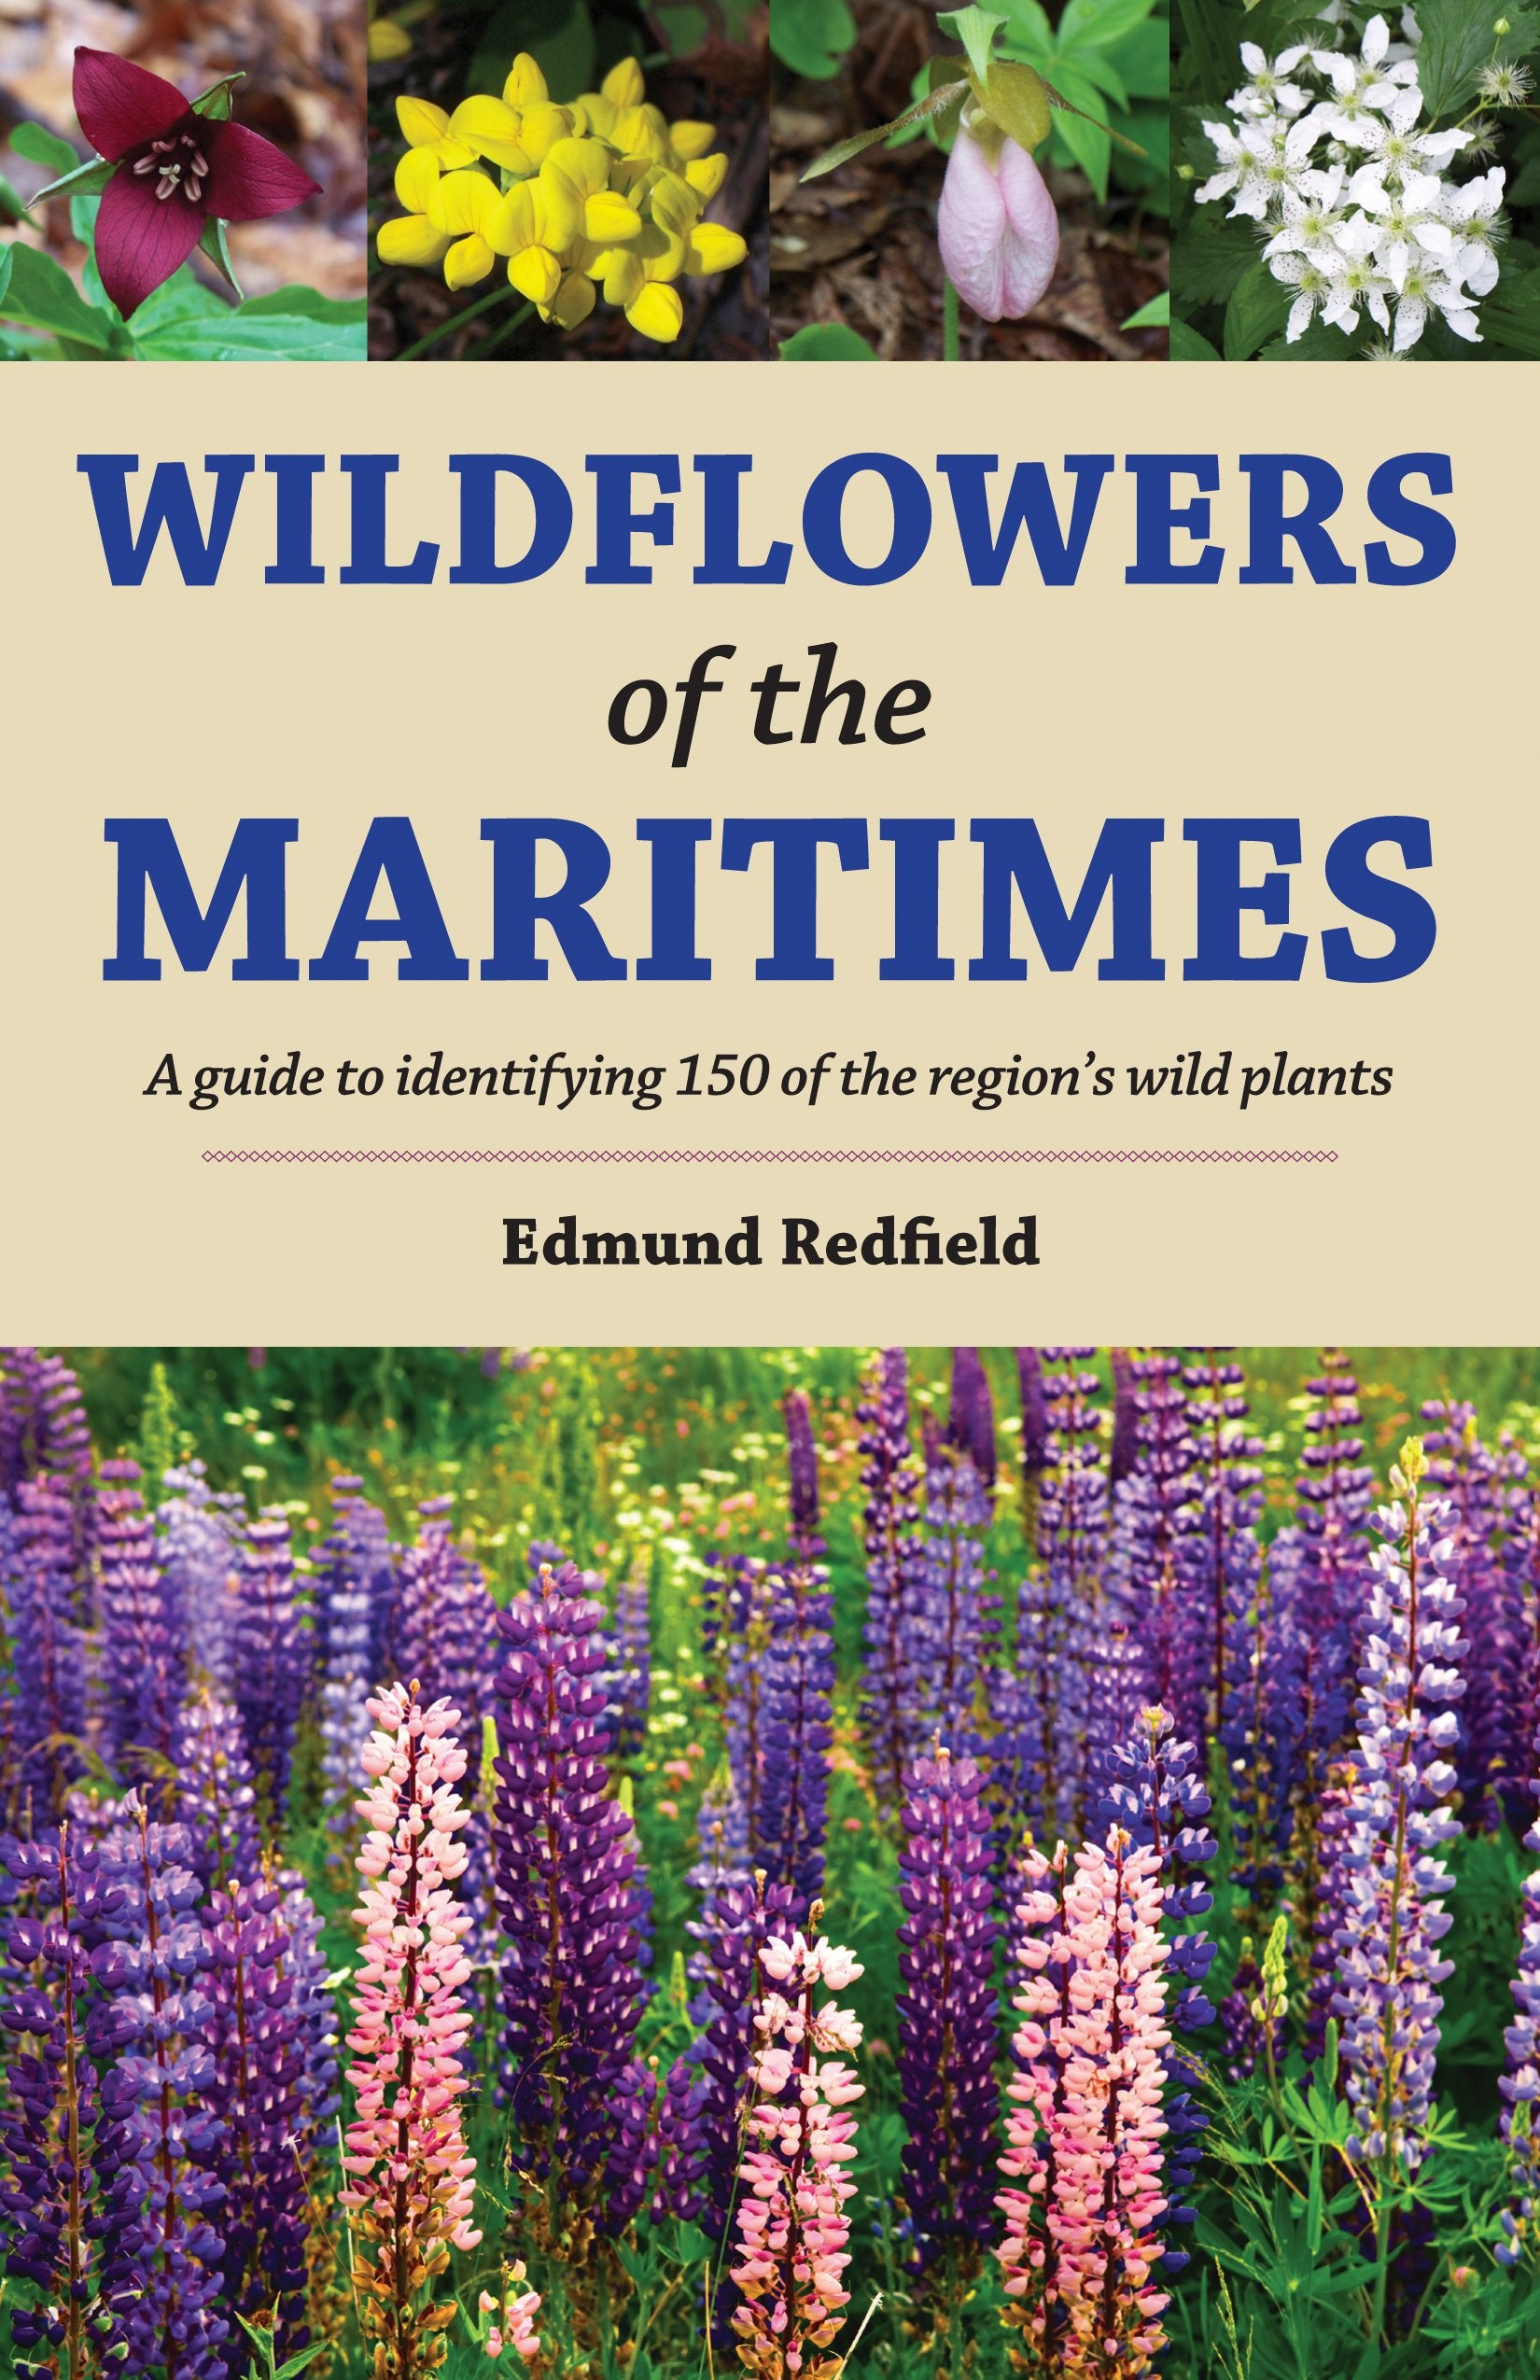 Wildflowers of the Maritimes: A guide to identifying 150 wild plants